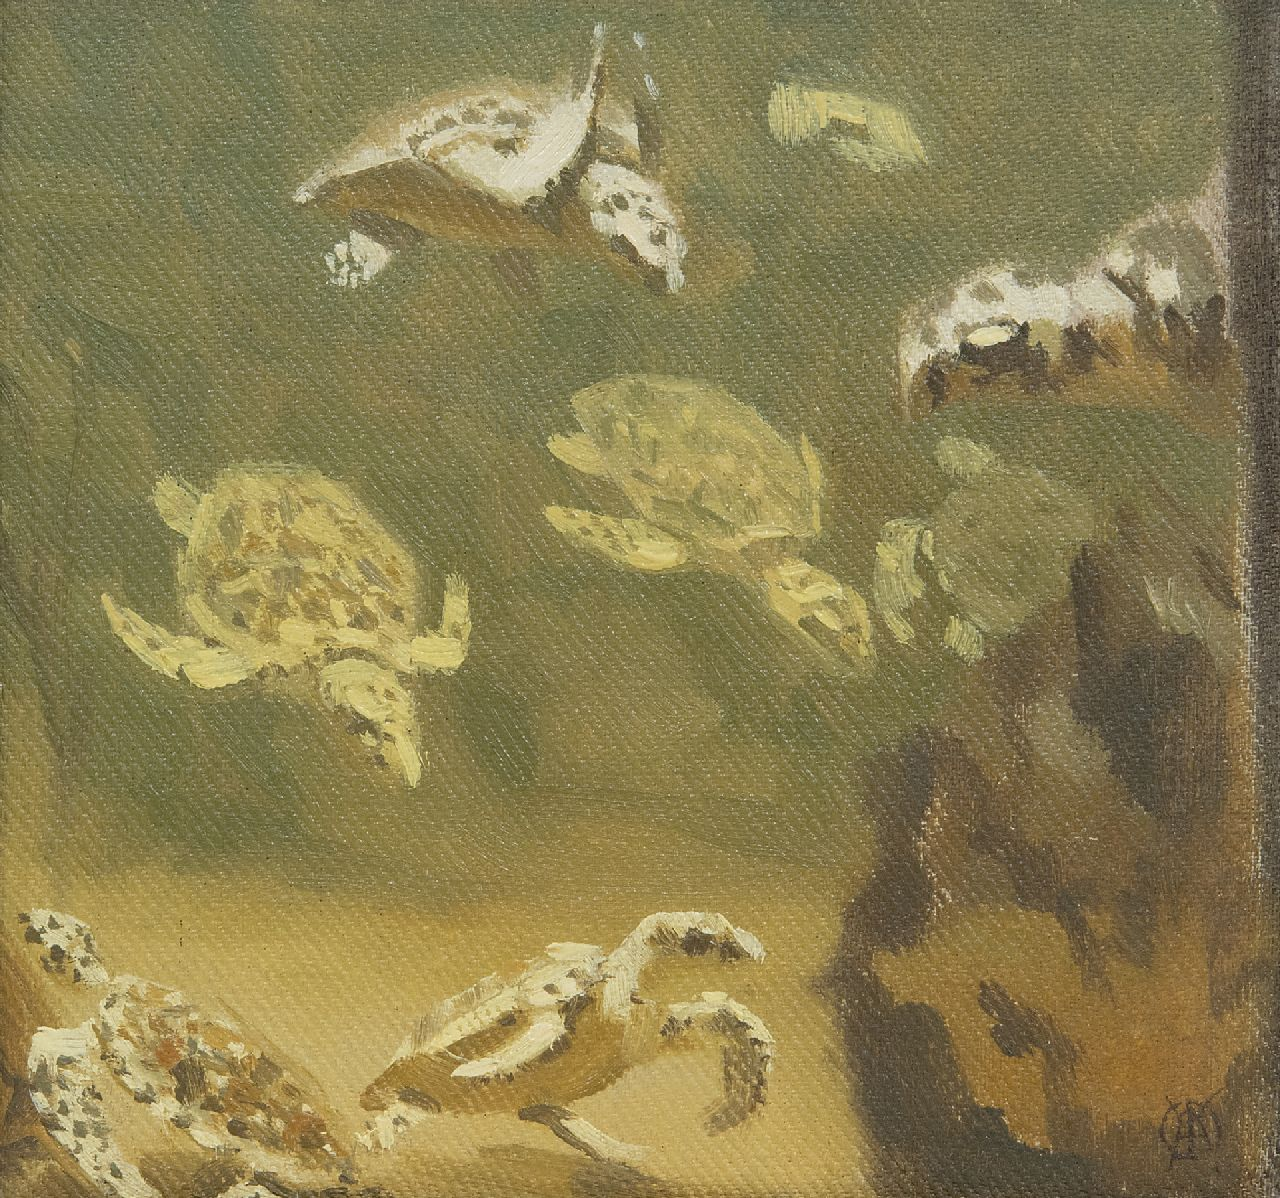 Dijsselhof G.W.  | Gerrit Willem Dijsselhof | Paintings offered for sale | Turtles, oil on panel 15.0 x 15.0 cm, signed l.r. with monogram